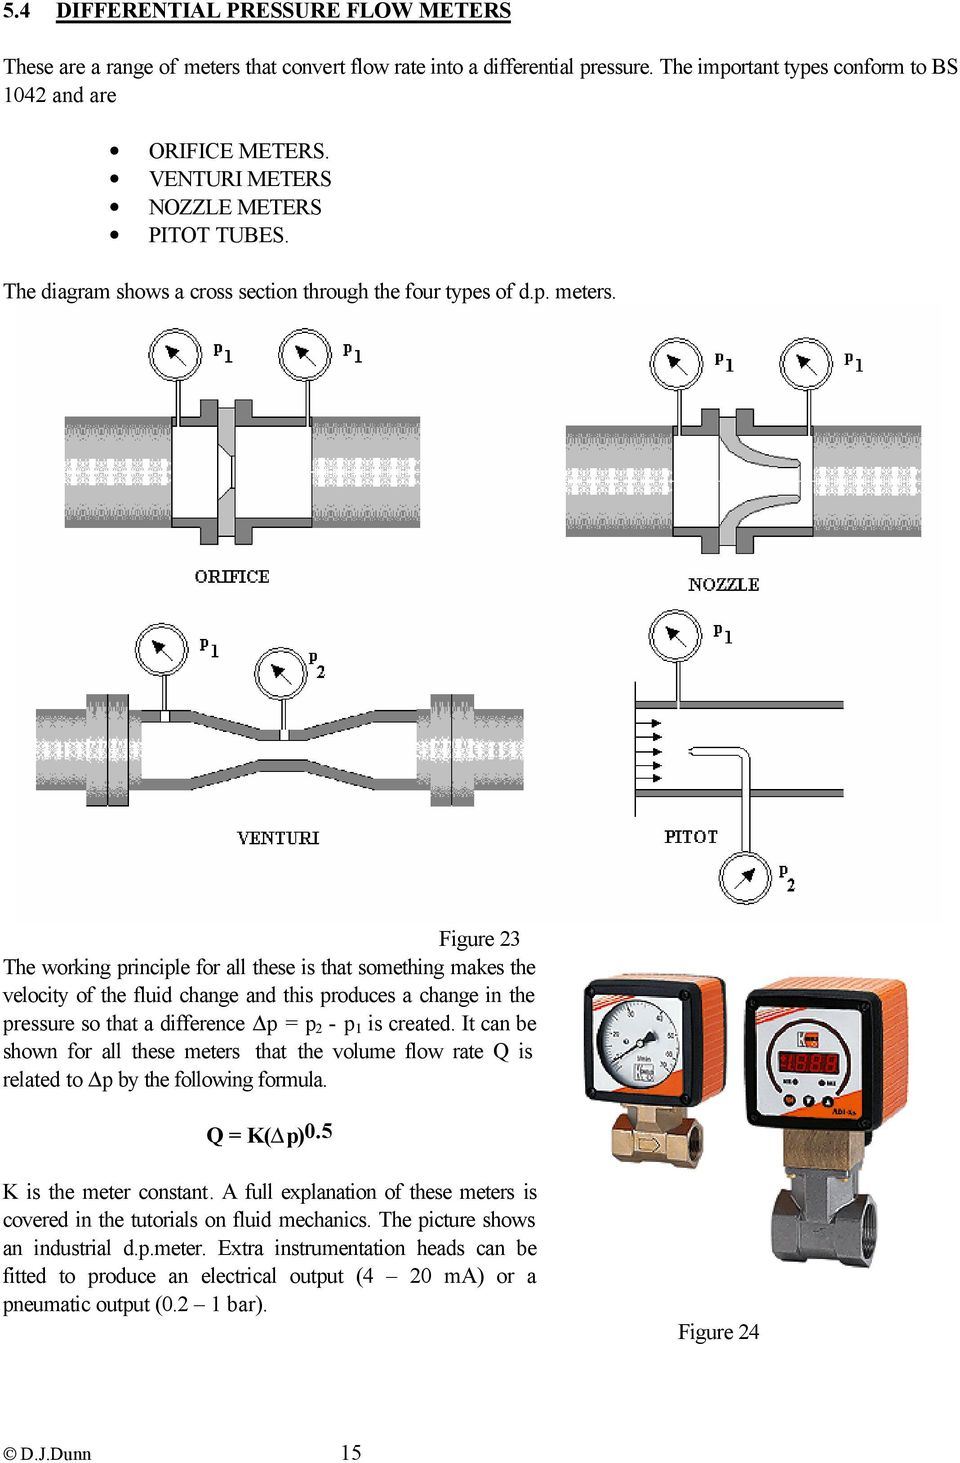 Figure 23 The working principle for all these is that something makes the velocity of the fluid change and this produces a change in the pressure so that a difference p = p 2 - p 1 is created.